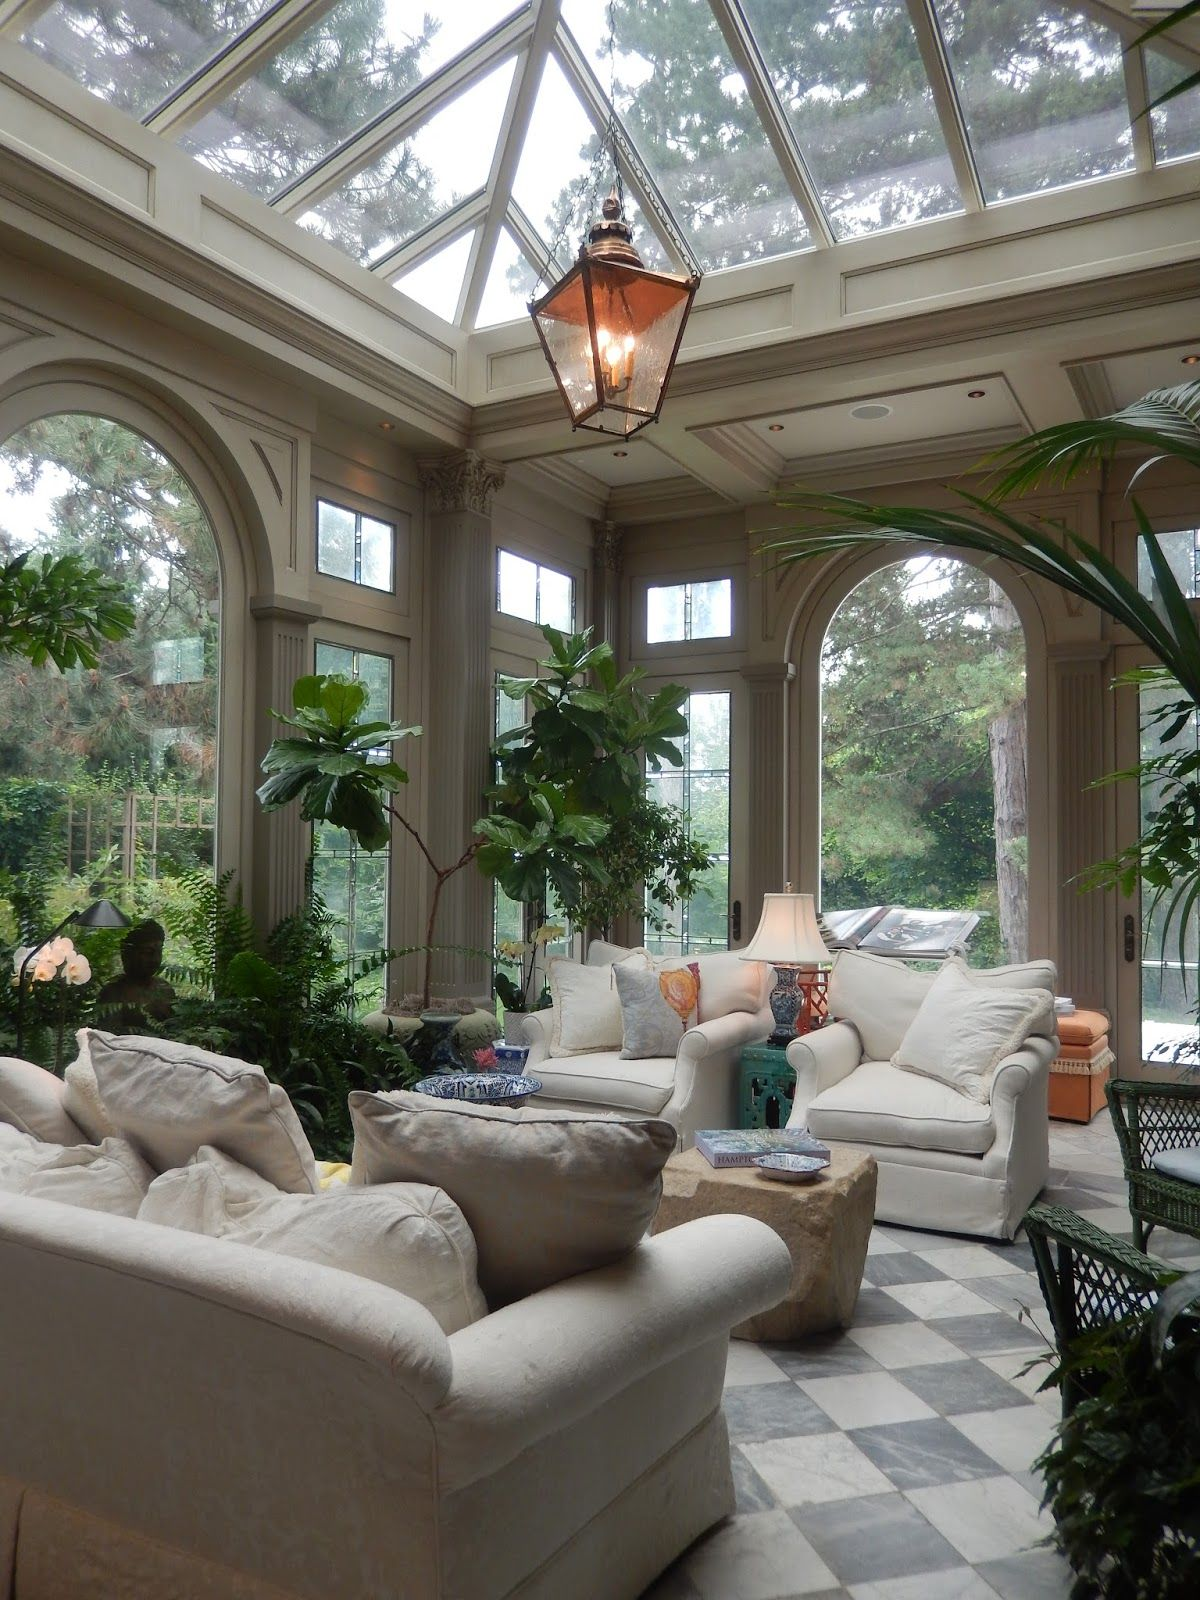 Window ideas for a sunroom  the french tangerine  inspired home favorite house part